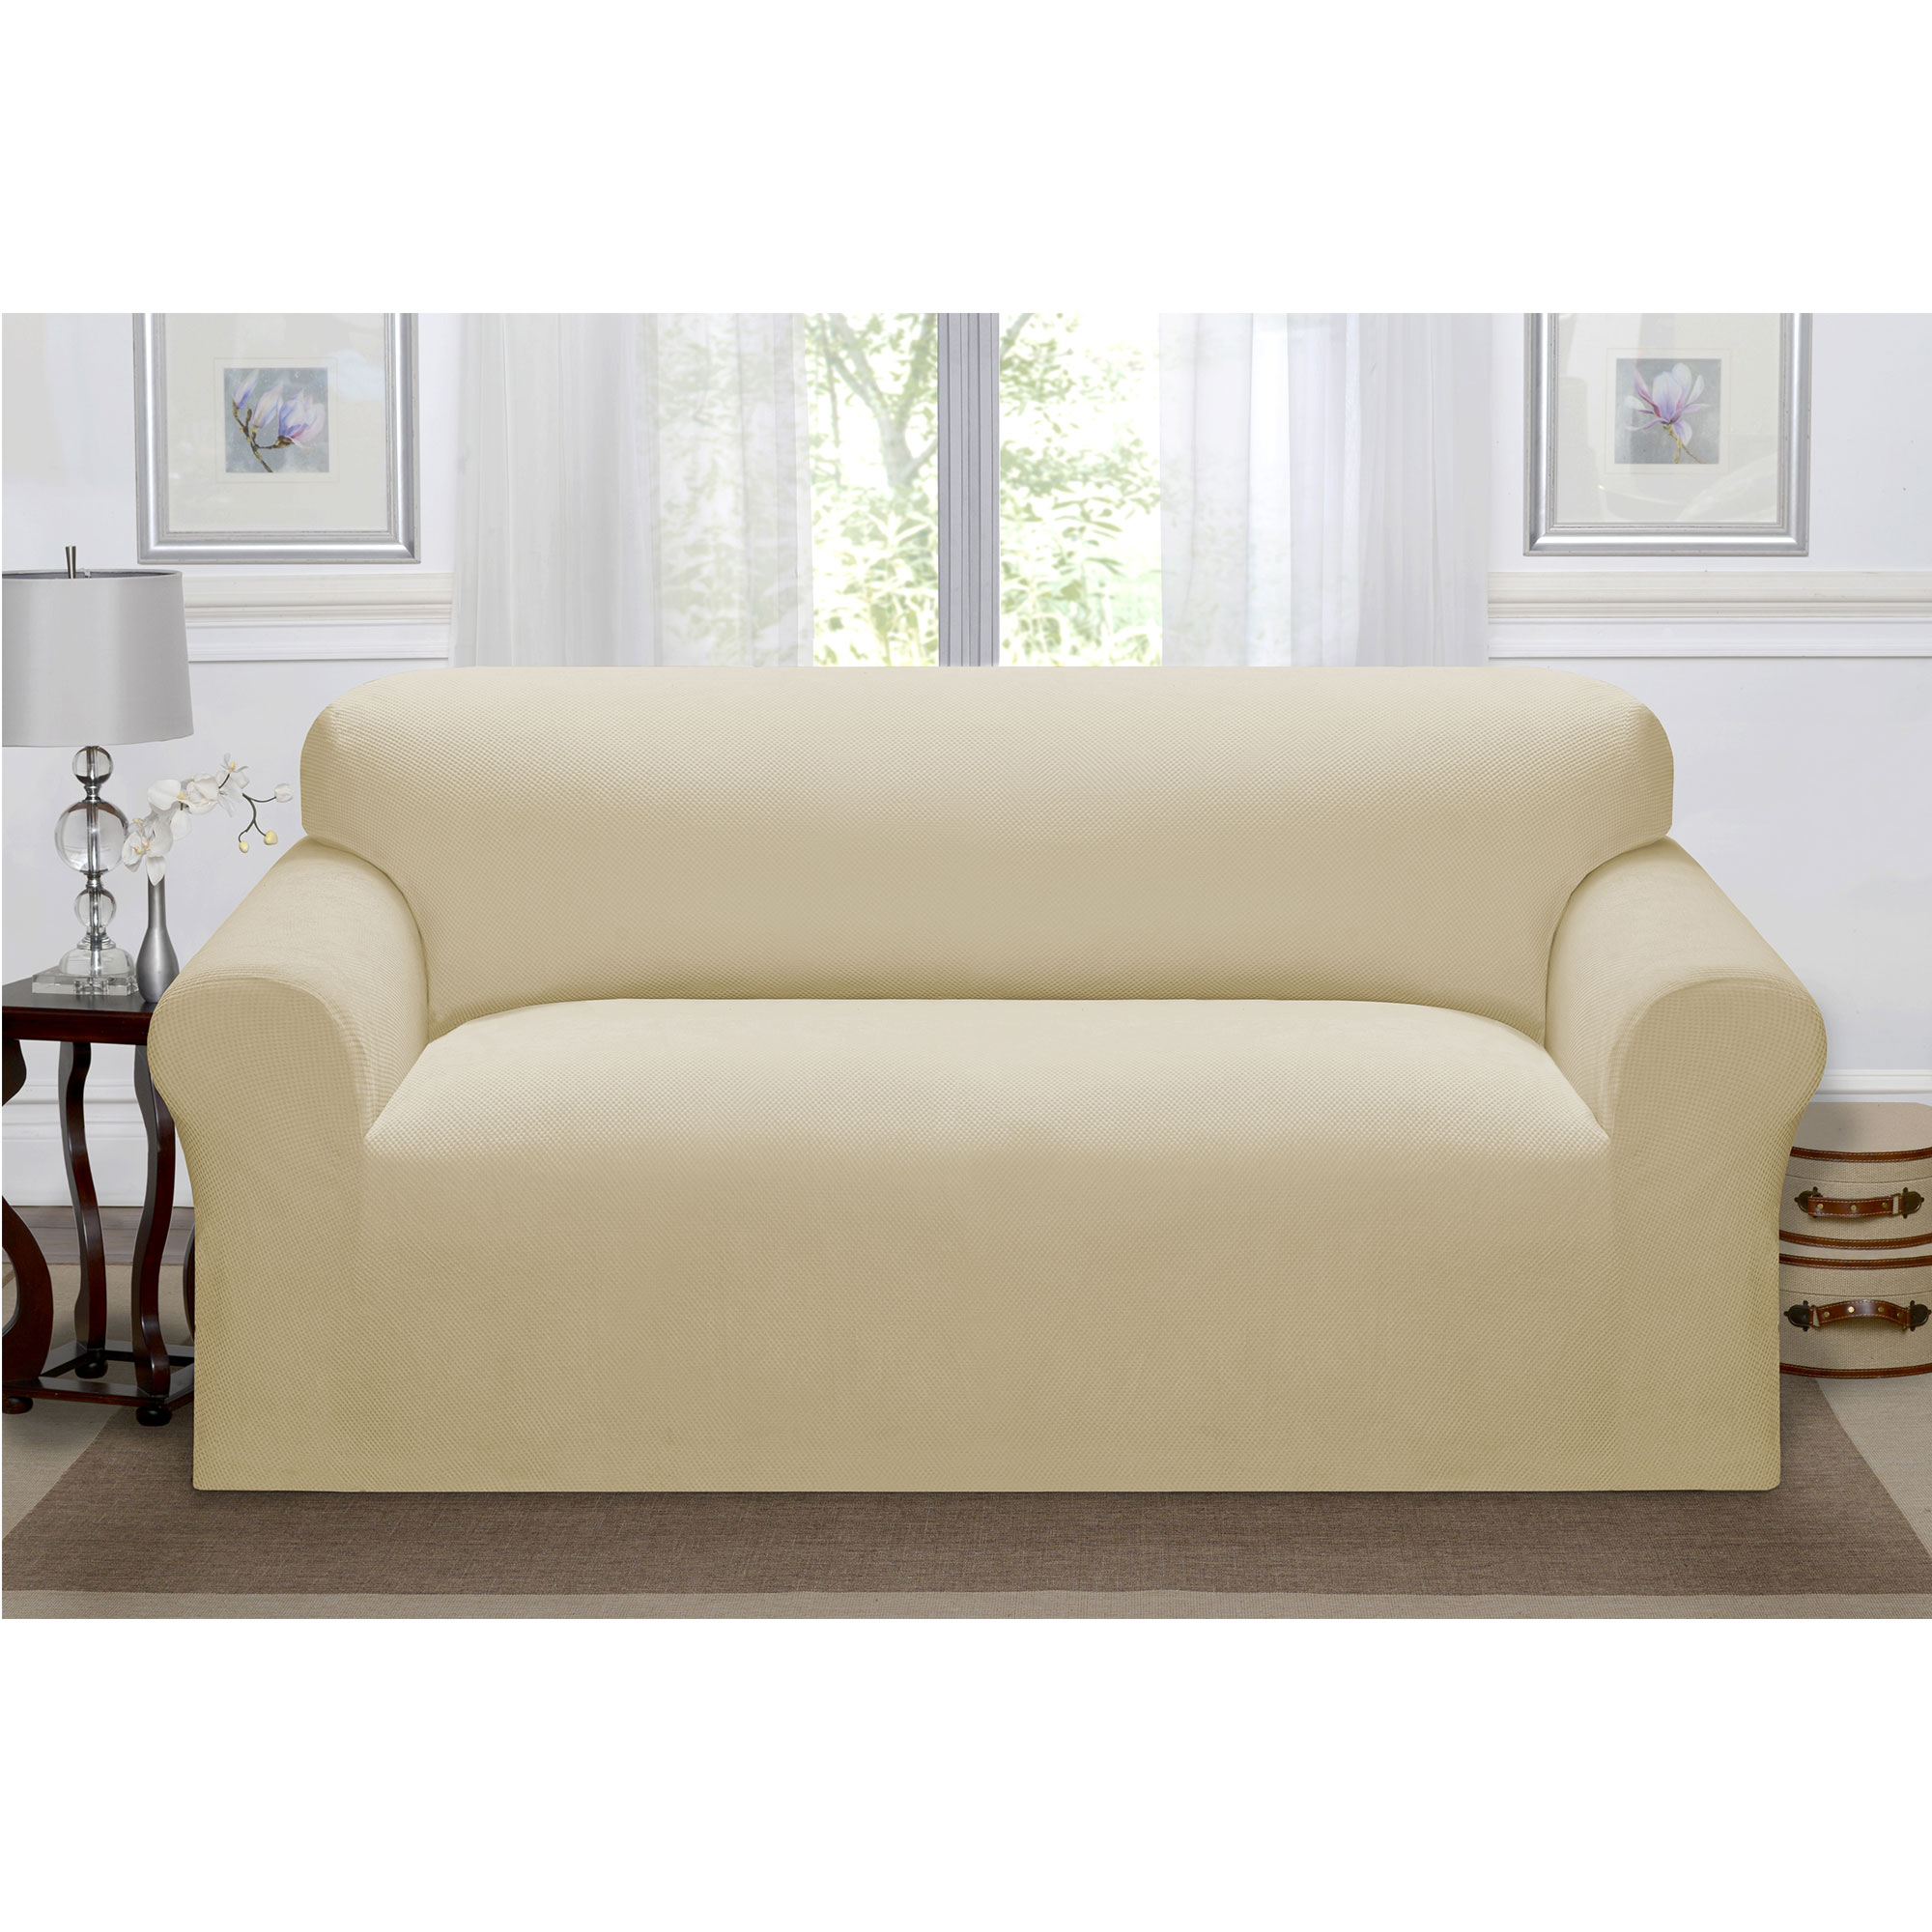 Madison Home Stretch Pique Furniture Slipcover, Soft Waffle Textured Pattern (Sofa, Linen)